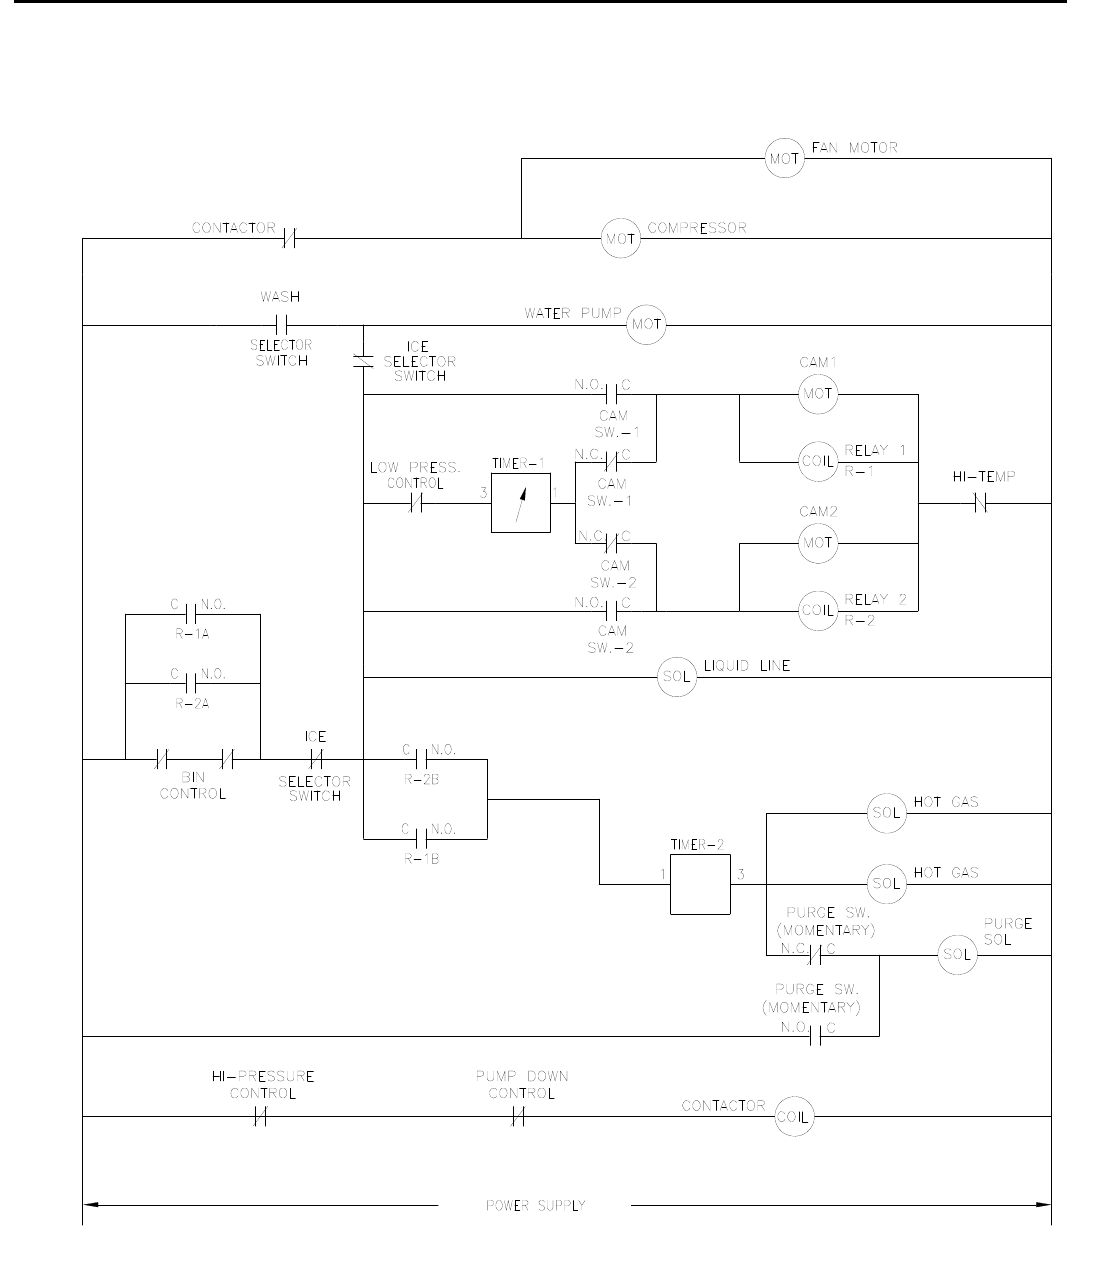 2008 Gmc C5500 Wiring Diagrams Hecho besides Question 6890 additionally Showthread together with Gmc T8500 Wiring Diagram as well Gmc C6500 Wiring Diagram. on gmc topkick 5500 wiring diagrams